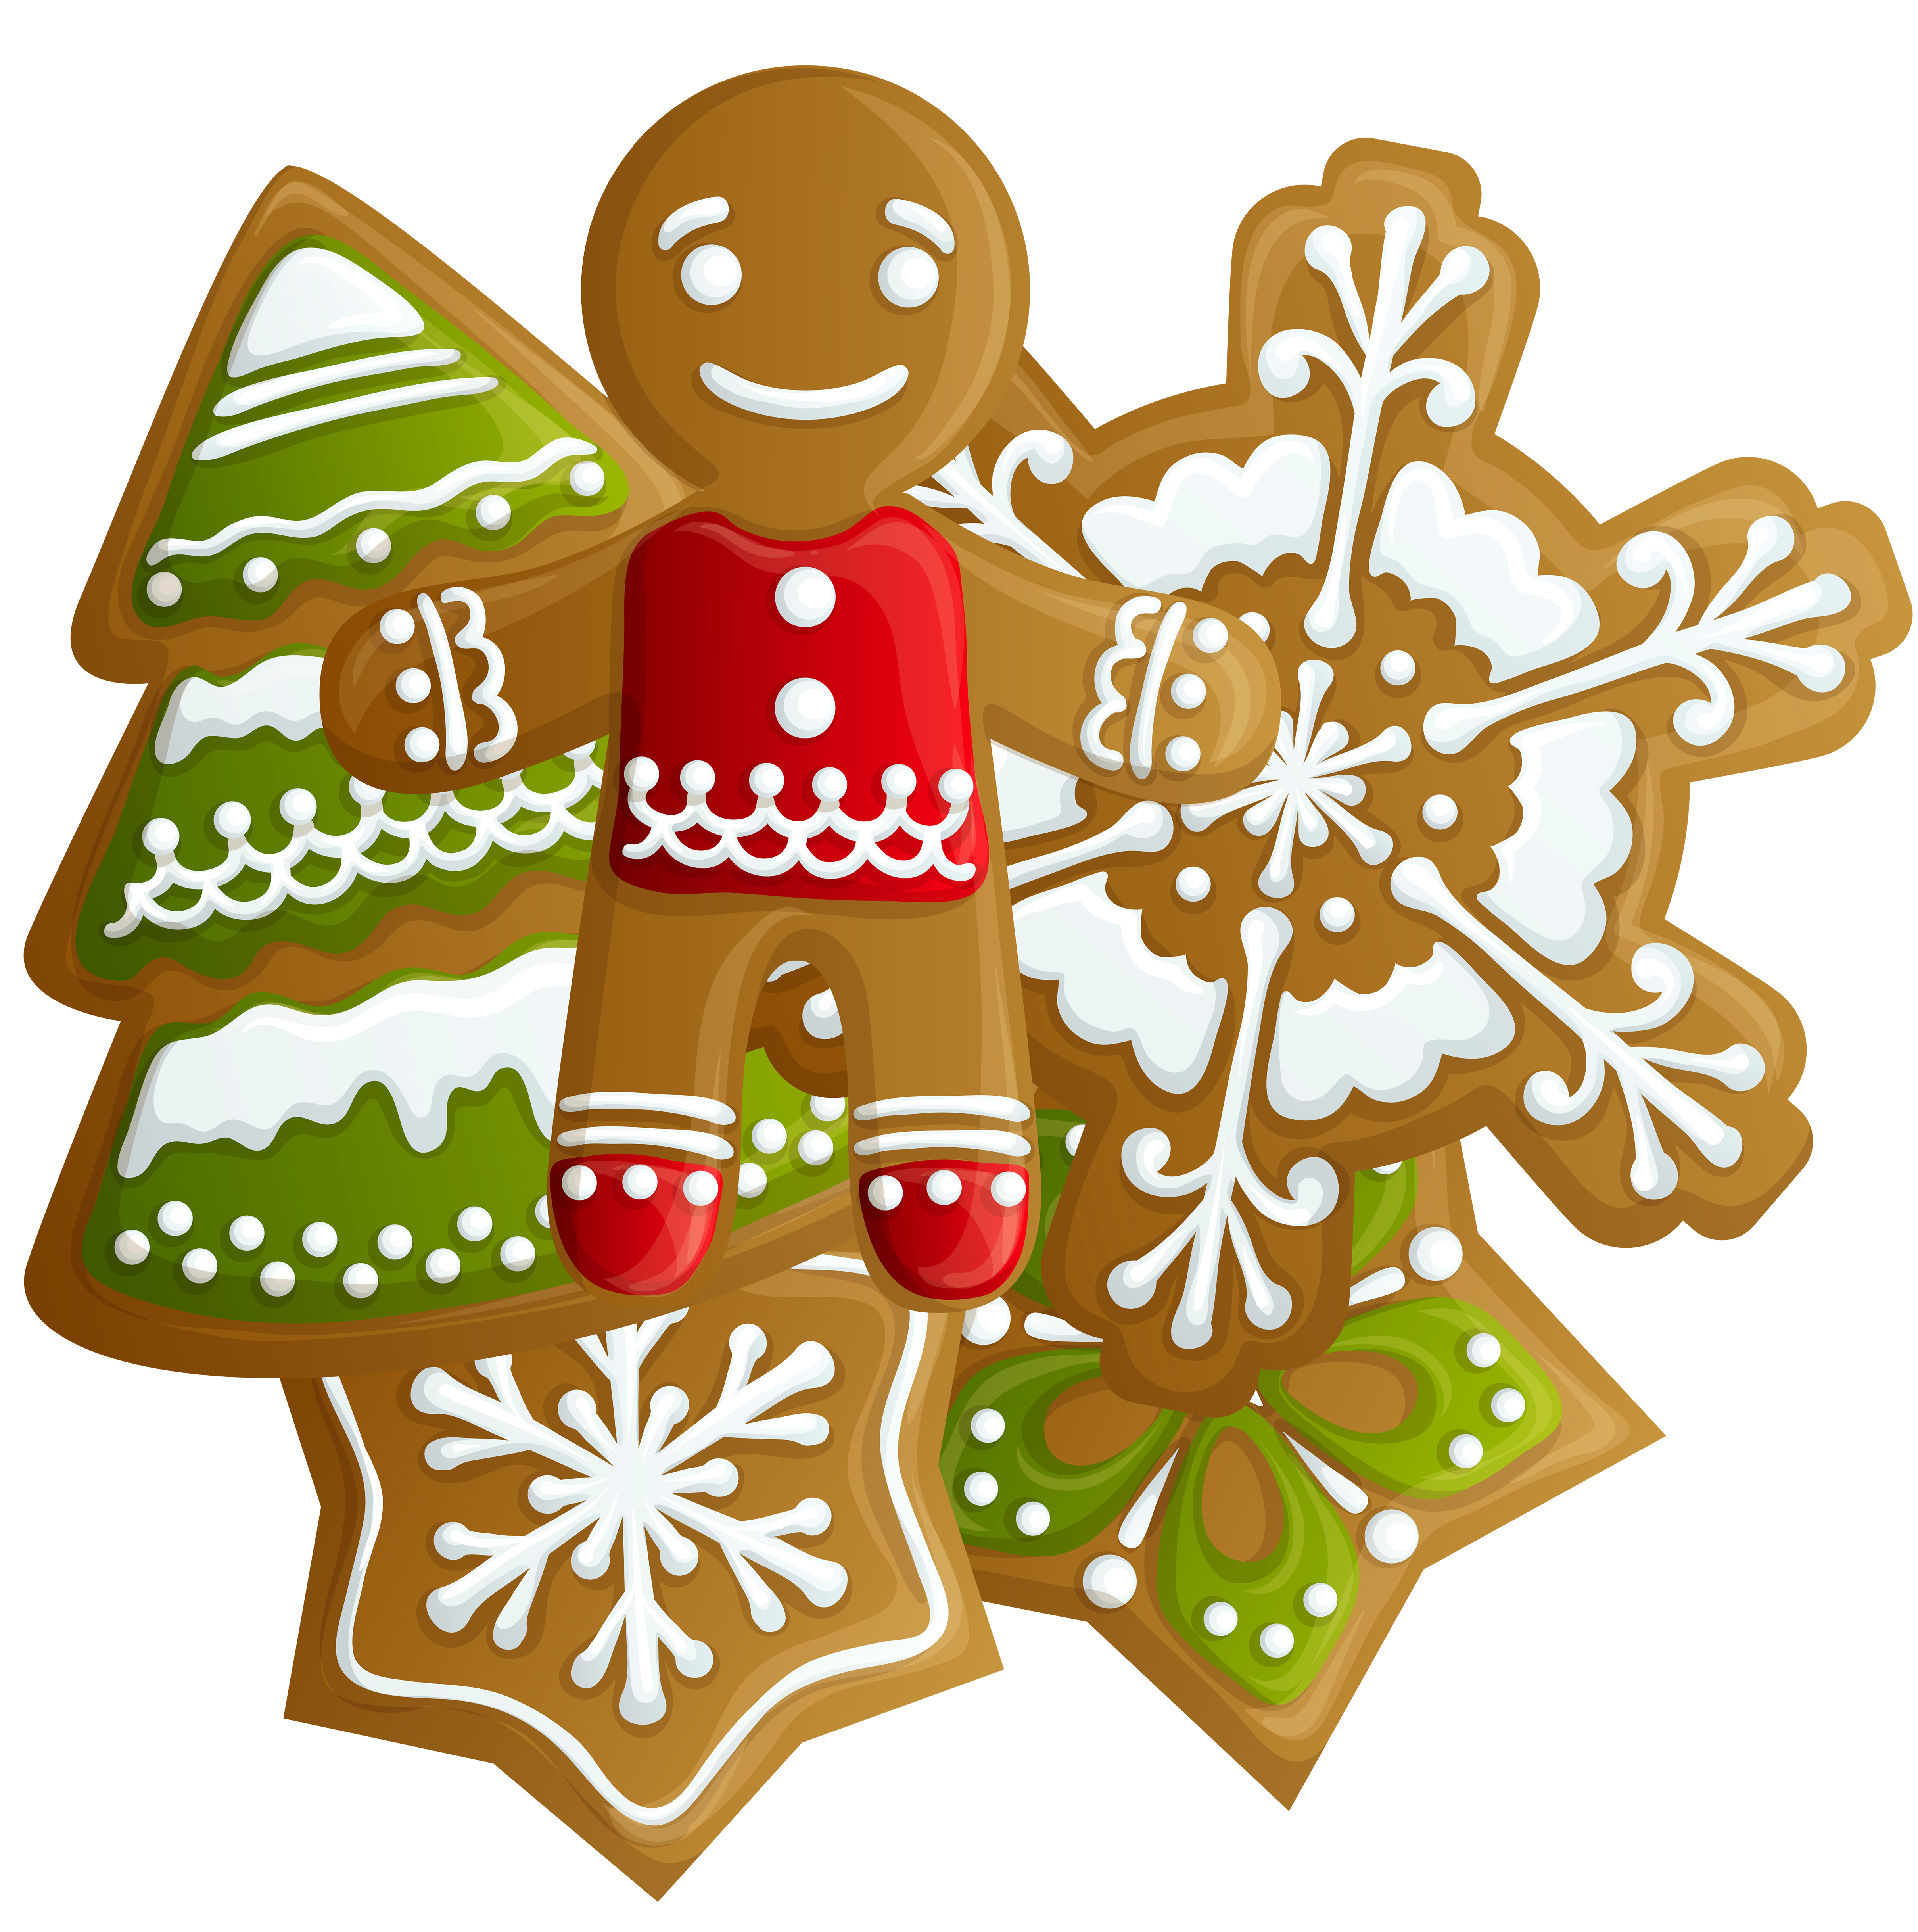 Gingerbread clipart train.  collection of cookies